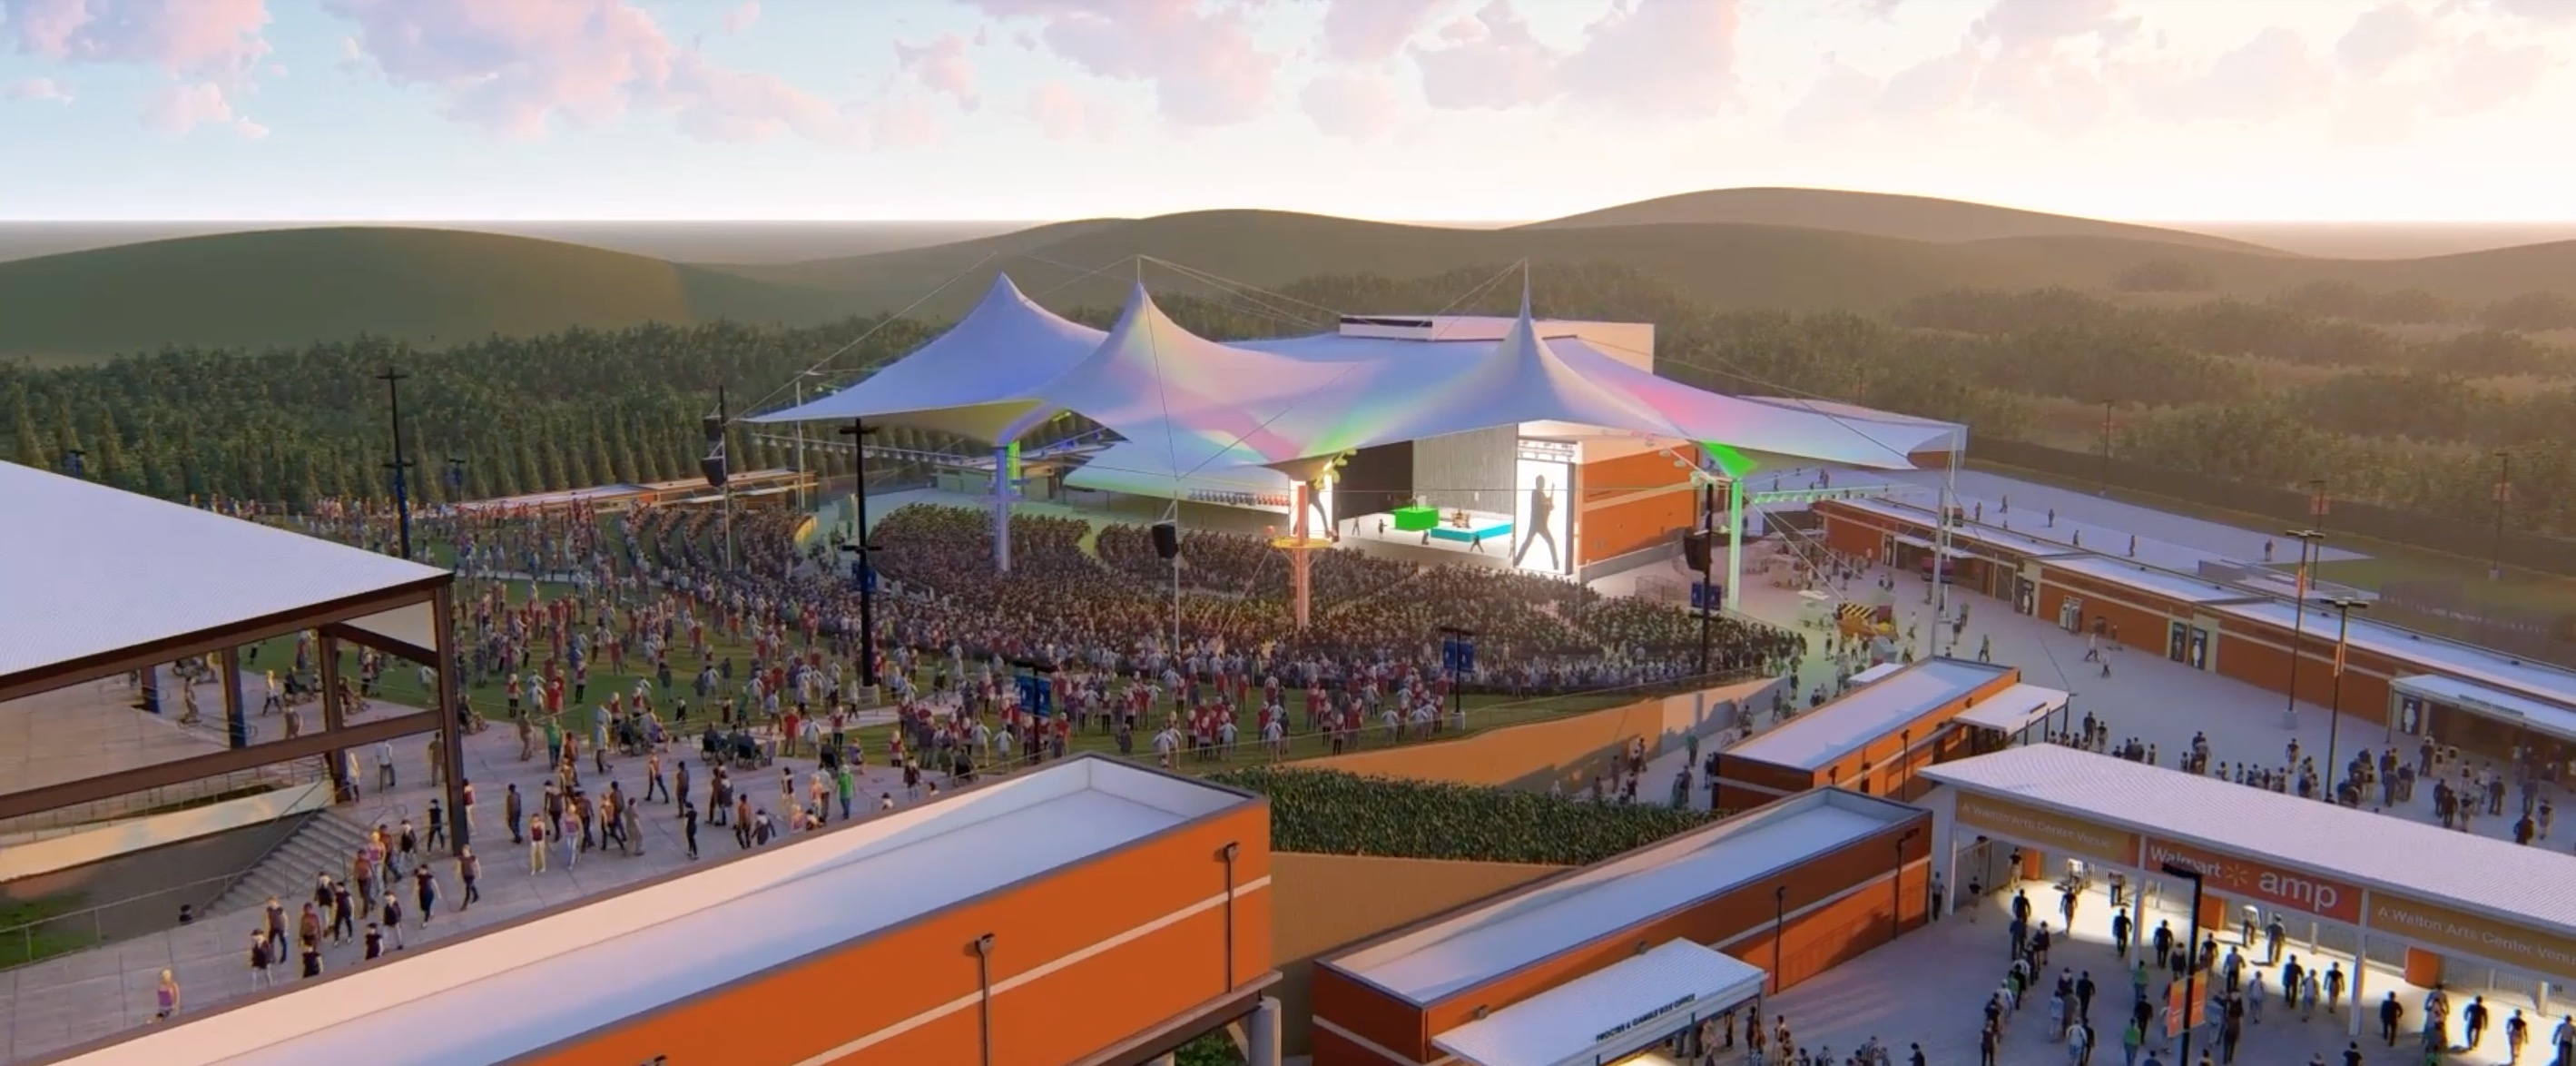 Office Chairs Walmart >> Walmart Arkansas Music Pavilion announces $13.9 million ...